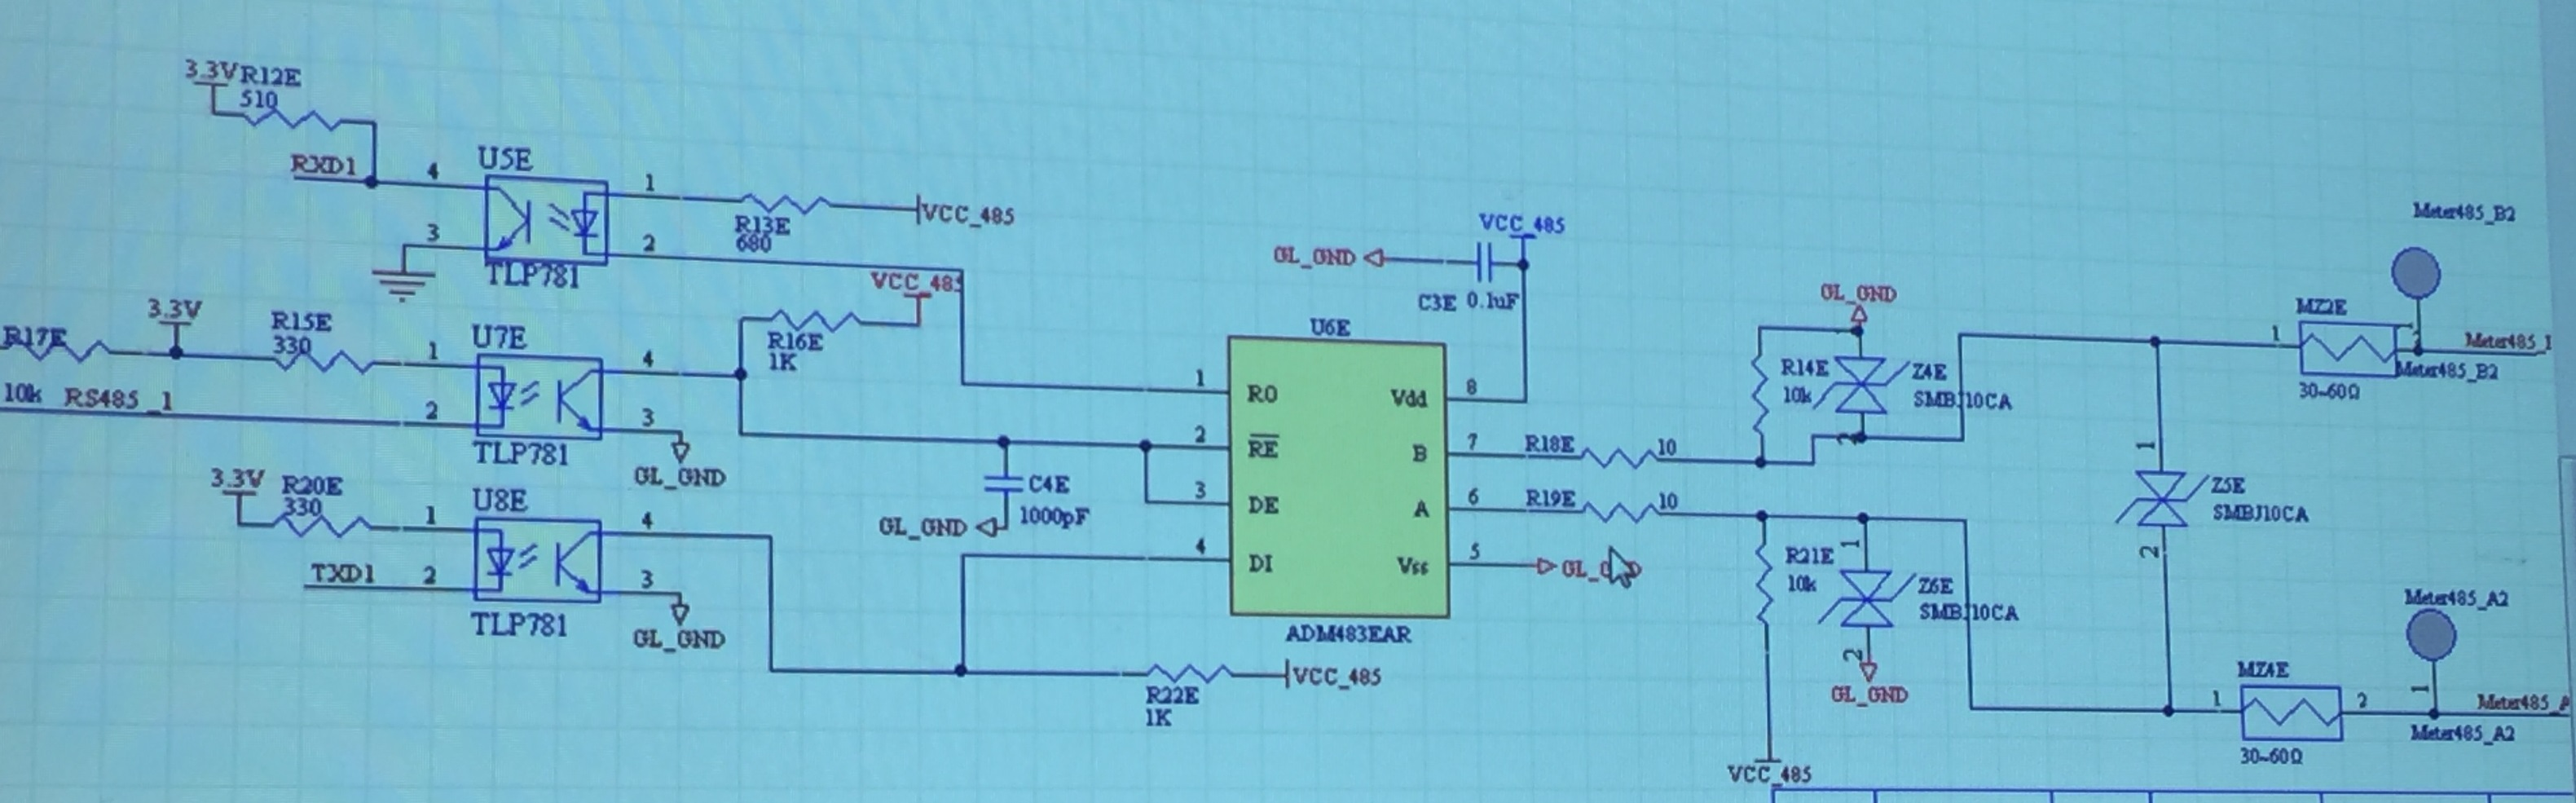 Cable Wiring Diagram Tv Wiring Schematic Diagram Rs 485 2wire Wiring ...